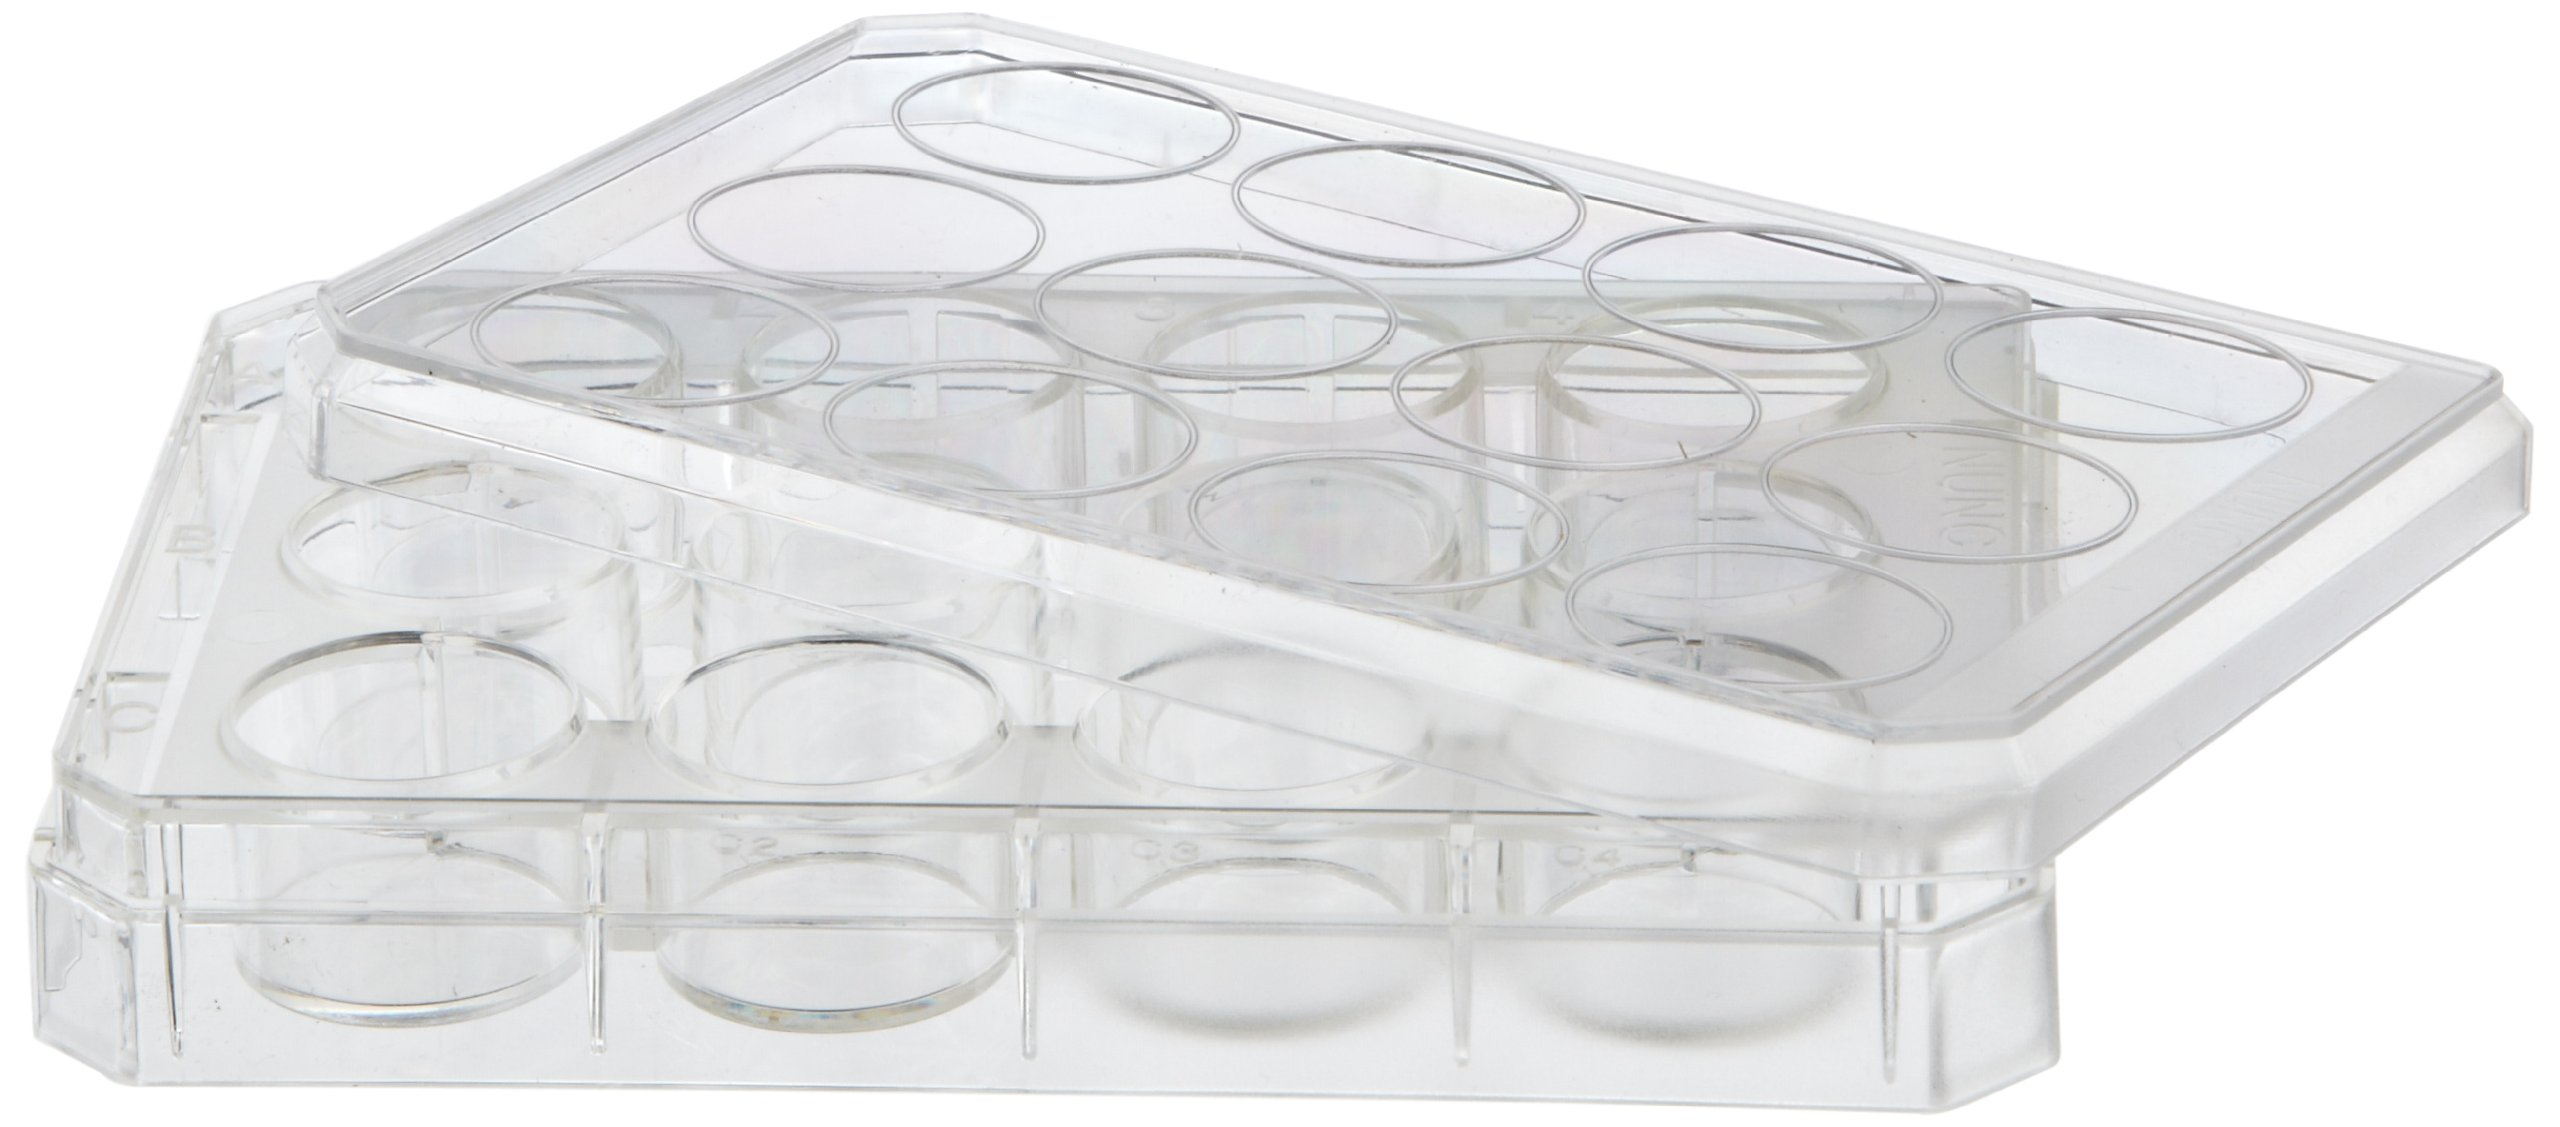 Nunc Microdish 12 Well Hydrocell Surface (Case of 6)